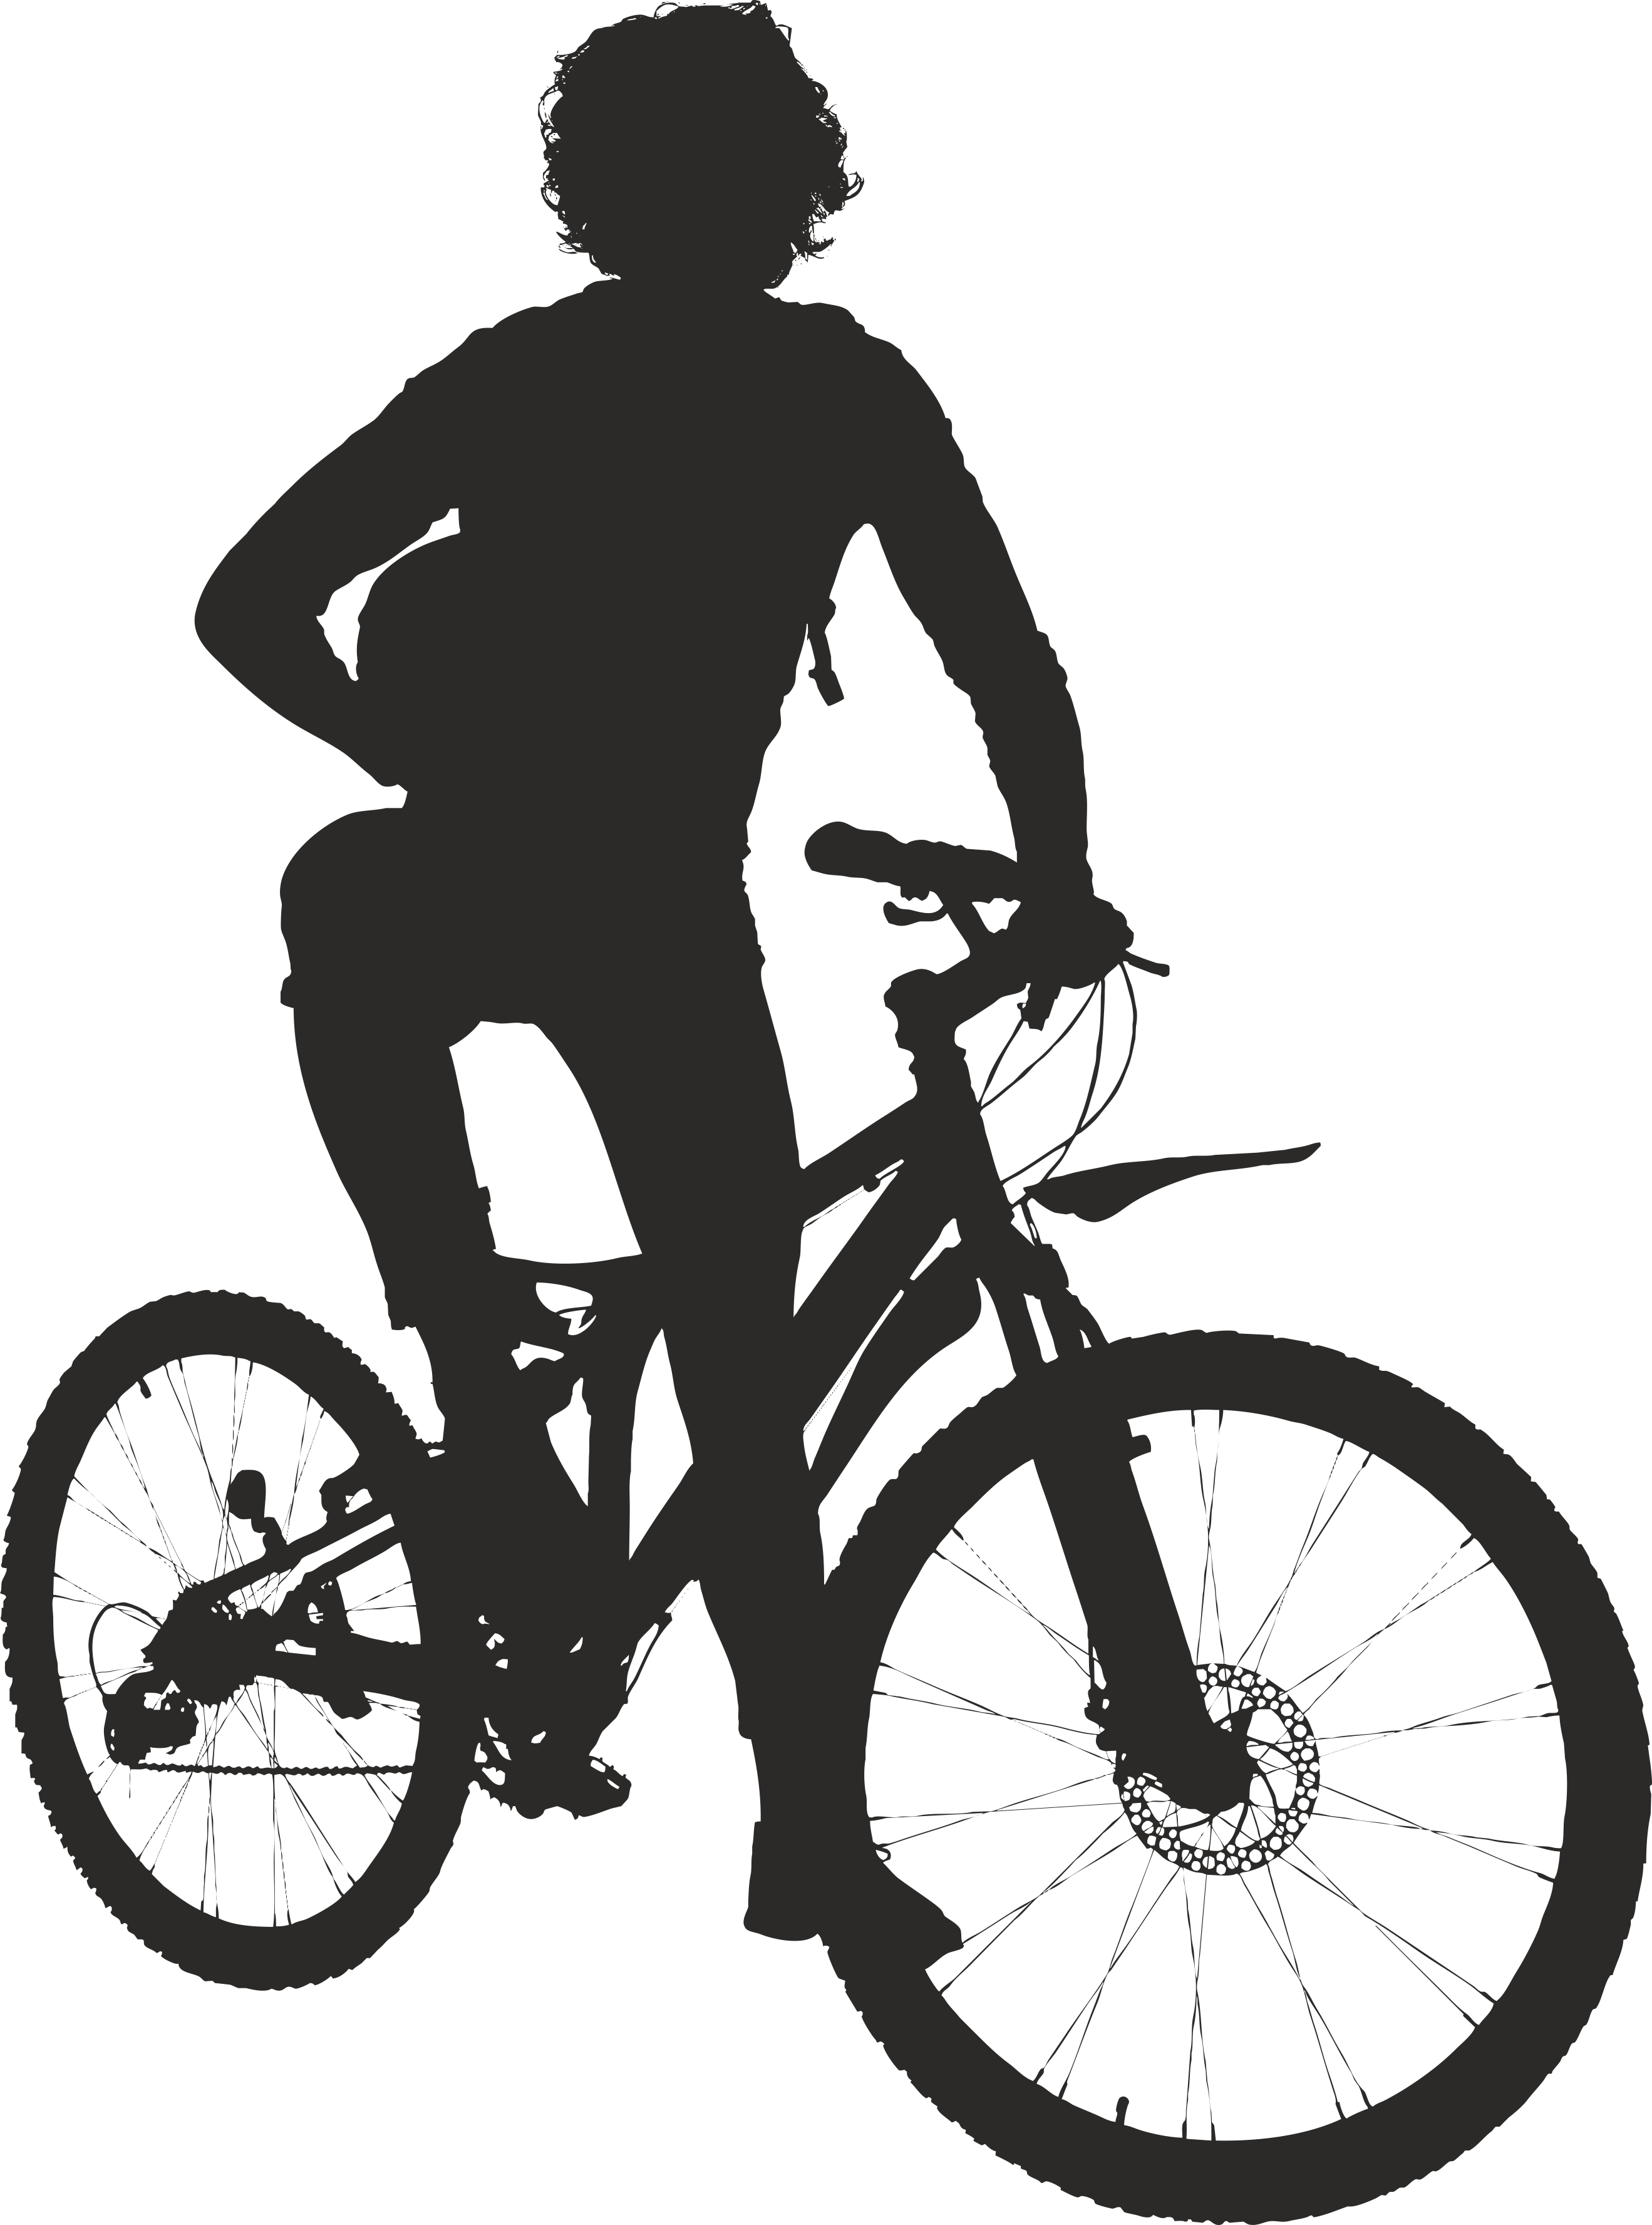 Silhouette Cyclist Collection Of Bicycle 23 Free DXF File